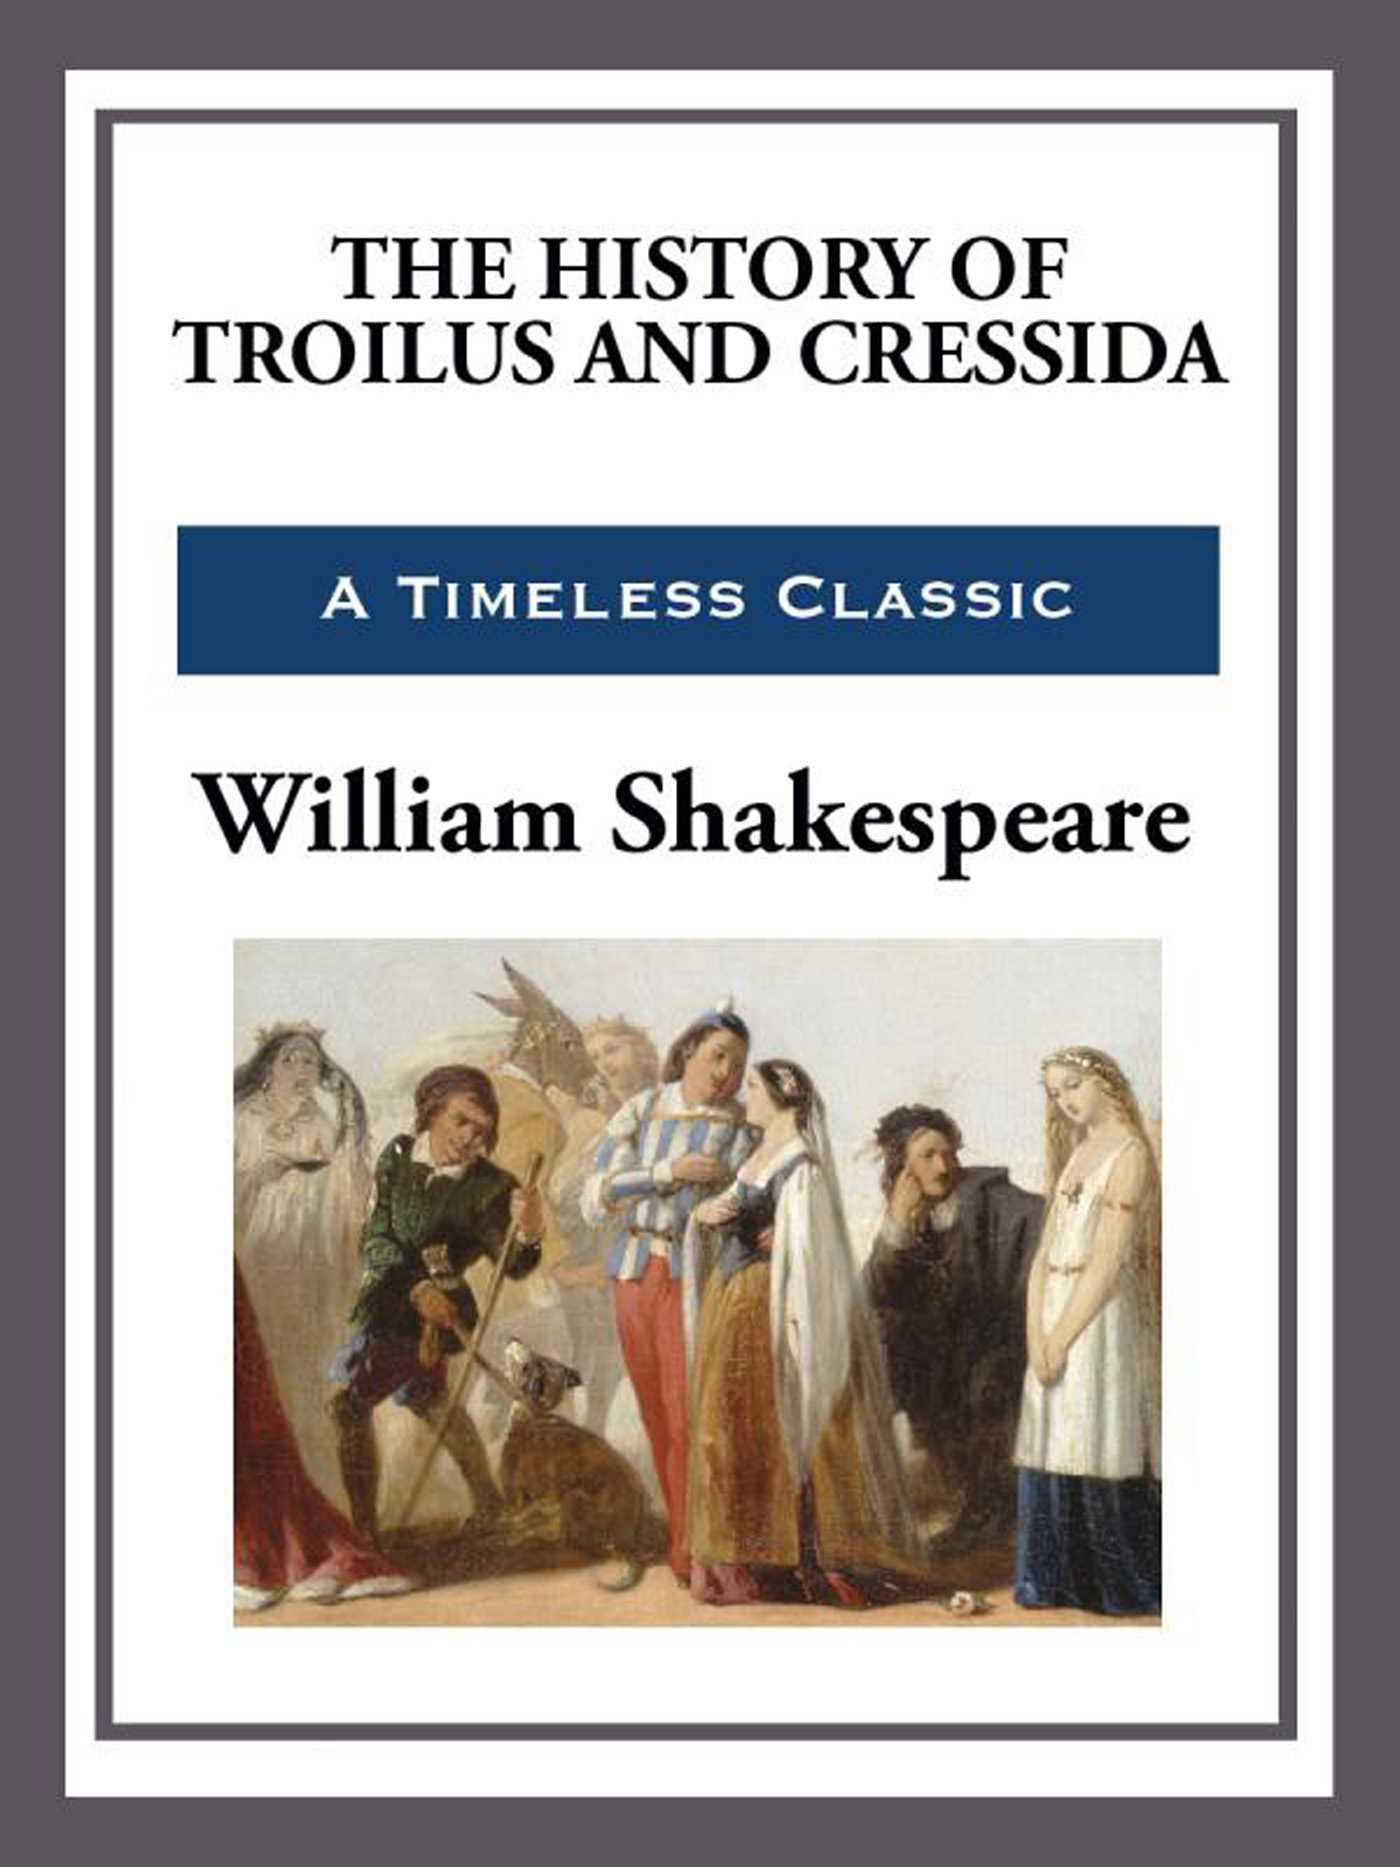 The history of troilus and cressida 9781625589972 hr